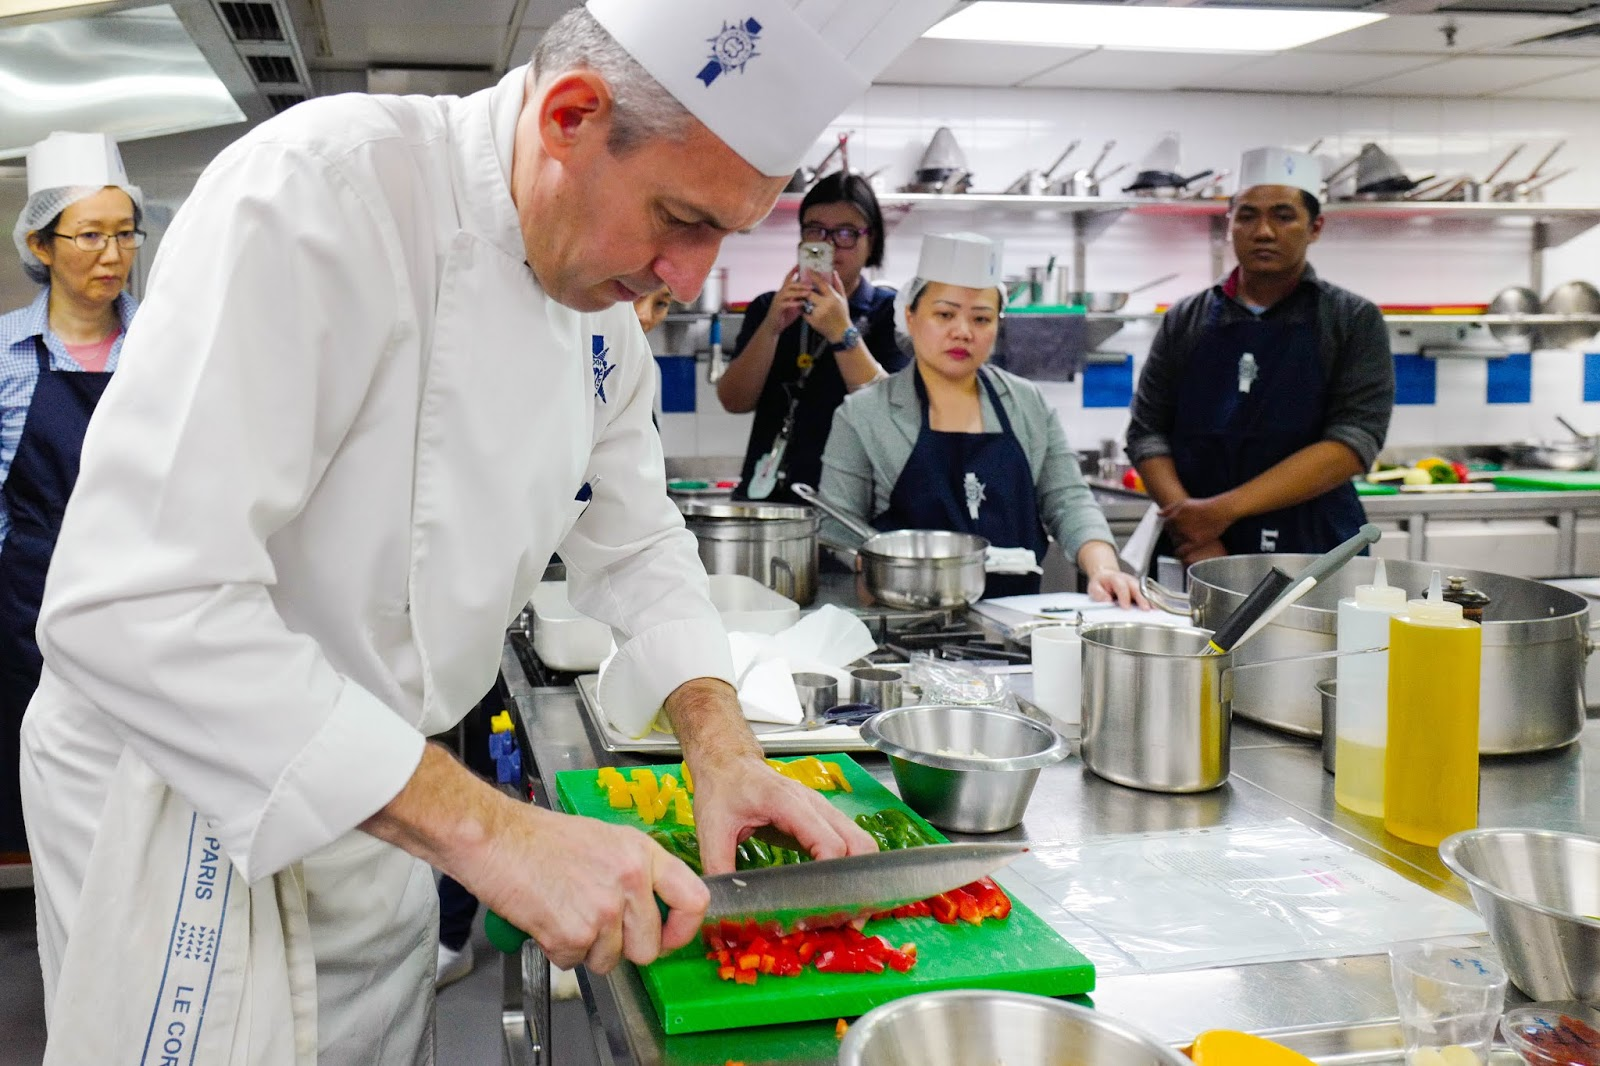 le cordon bleu malaysia: from the south of france to the grand diplôme